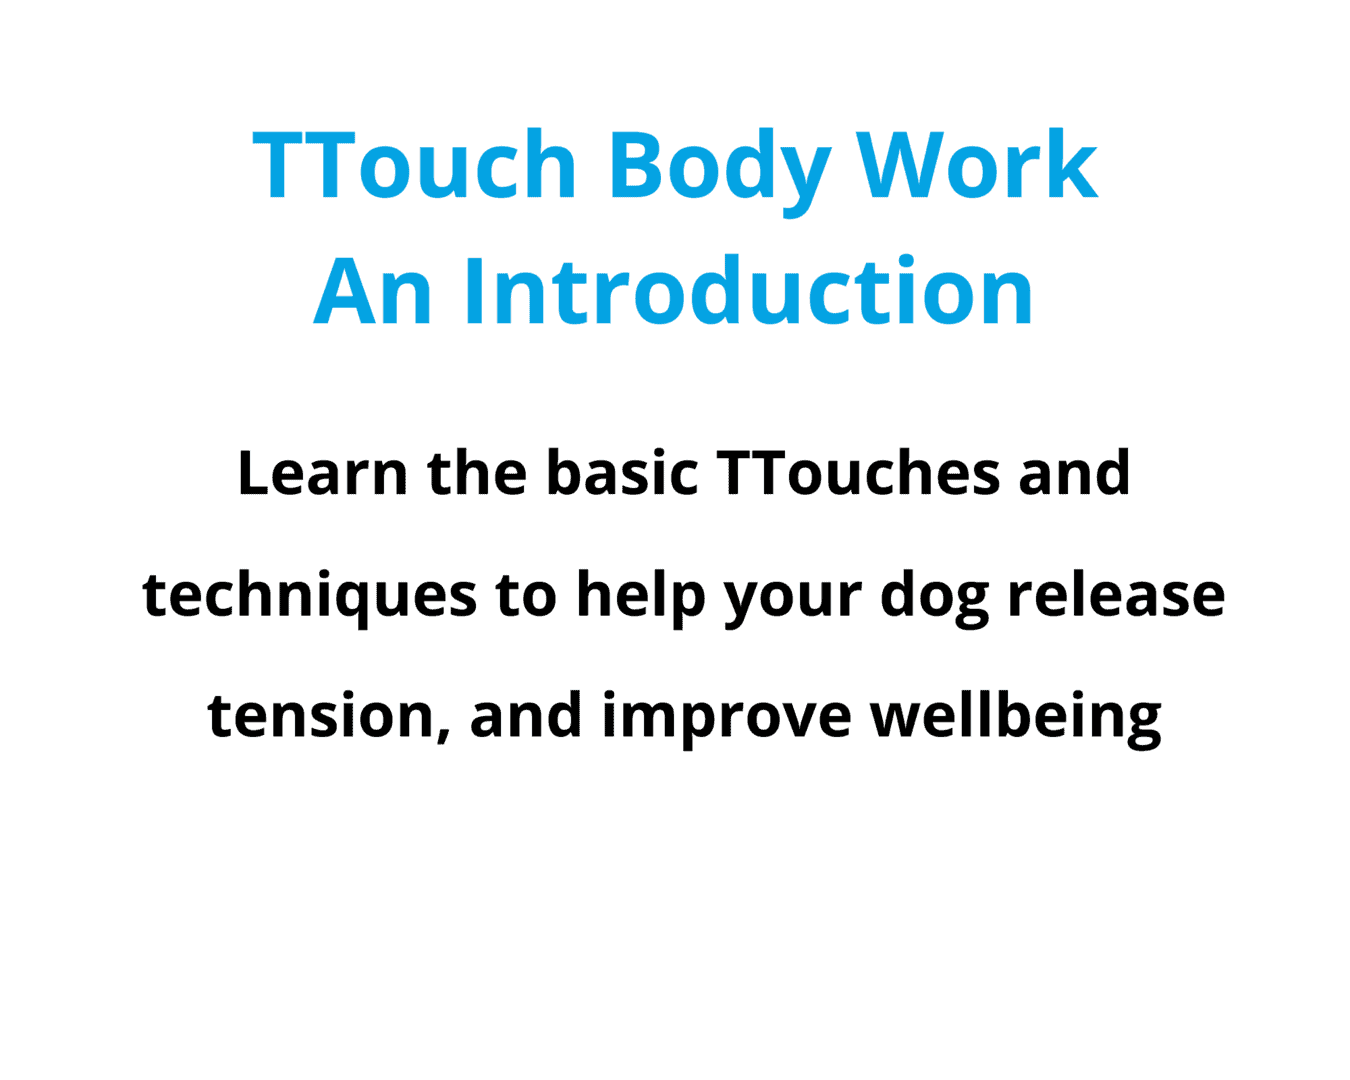 Online Course Introduction to TTouch Body Work